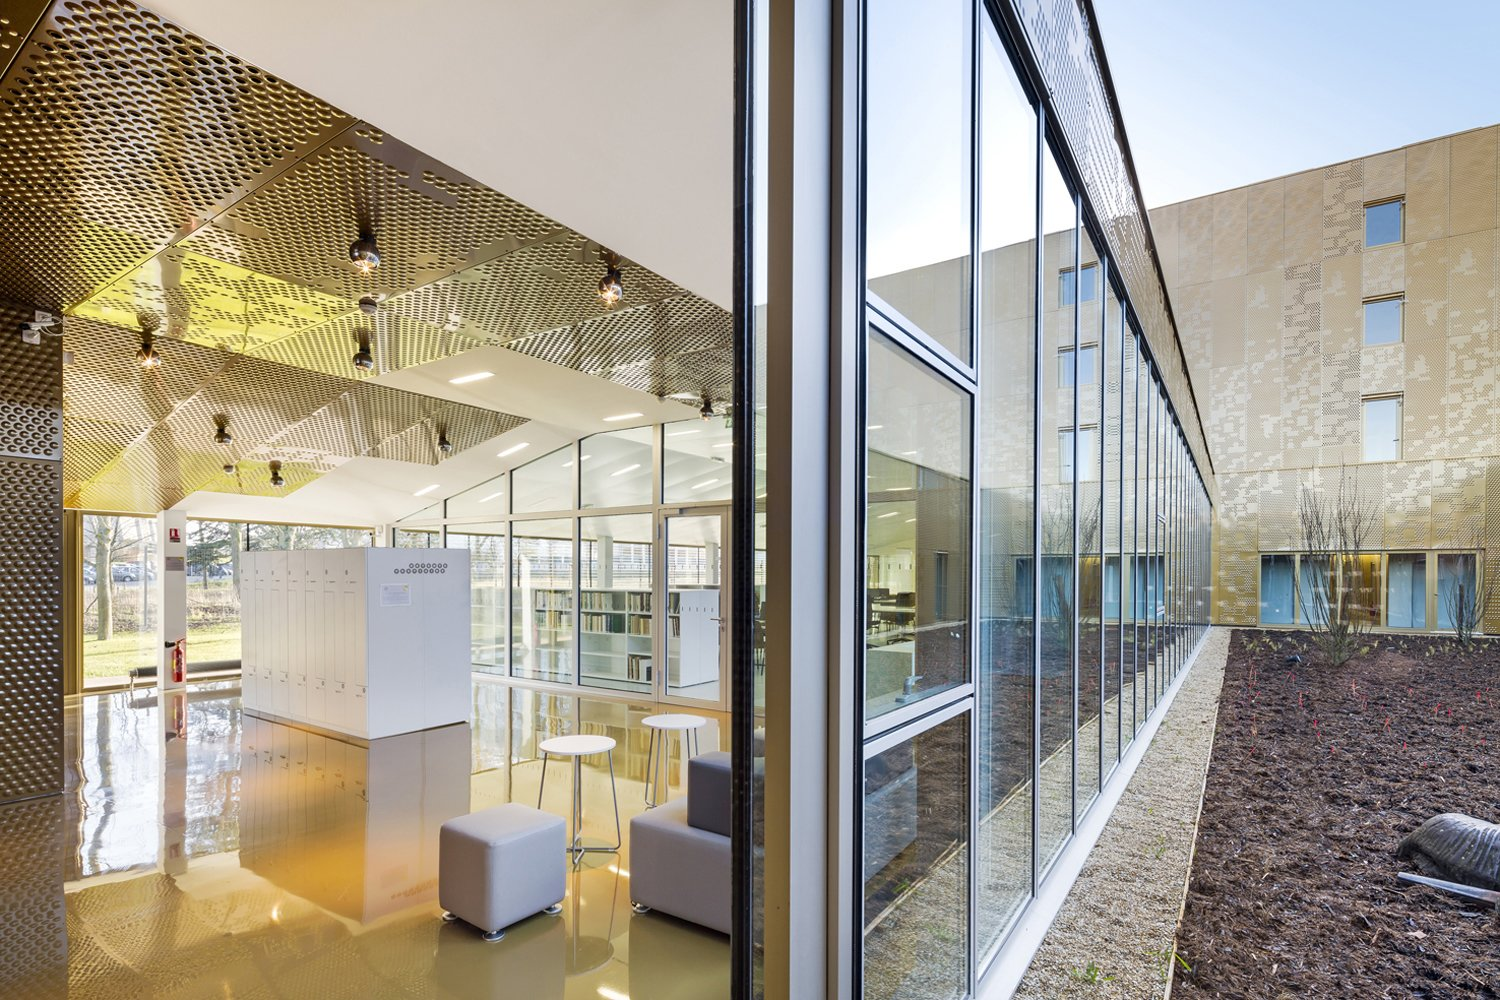 """The metallic motif continues indoors. Large expanses of glass let light in, which plays against the reflective ceiling, walls, and floors.  Search """"fences,-walls--metal"""" from French Archives Building Wrapped in a Dazzling Gold Shell"""